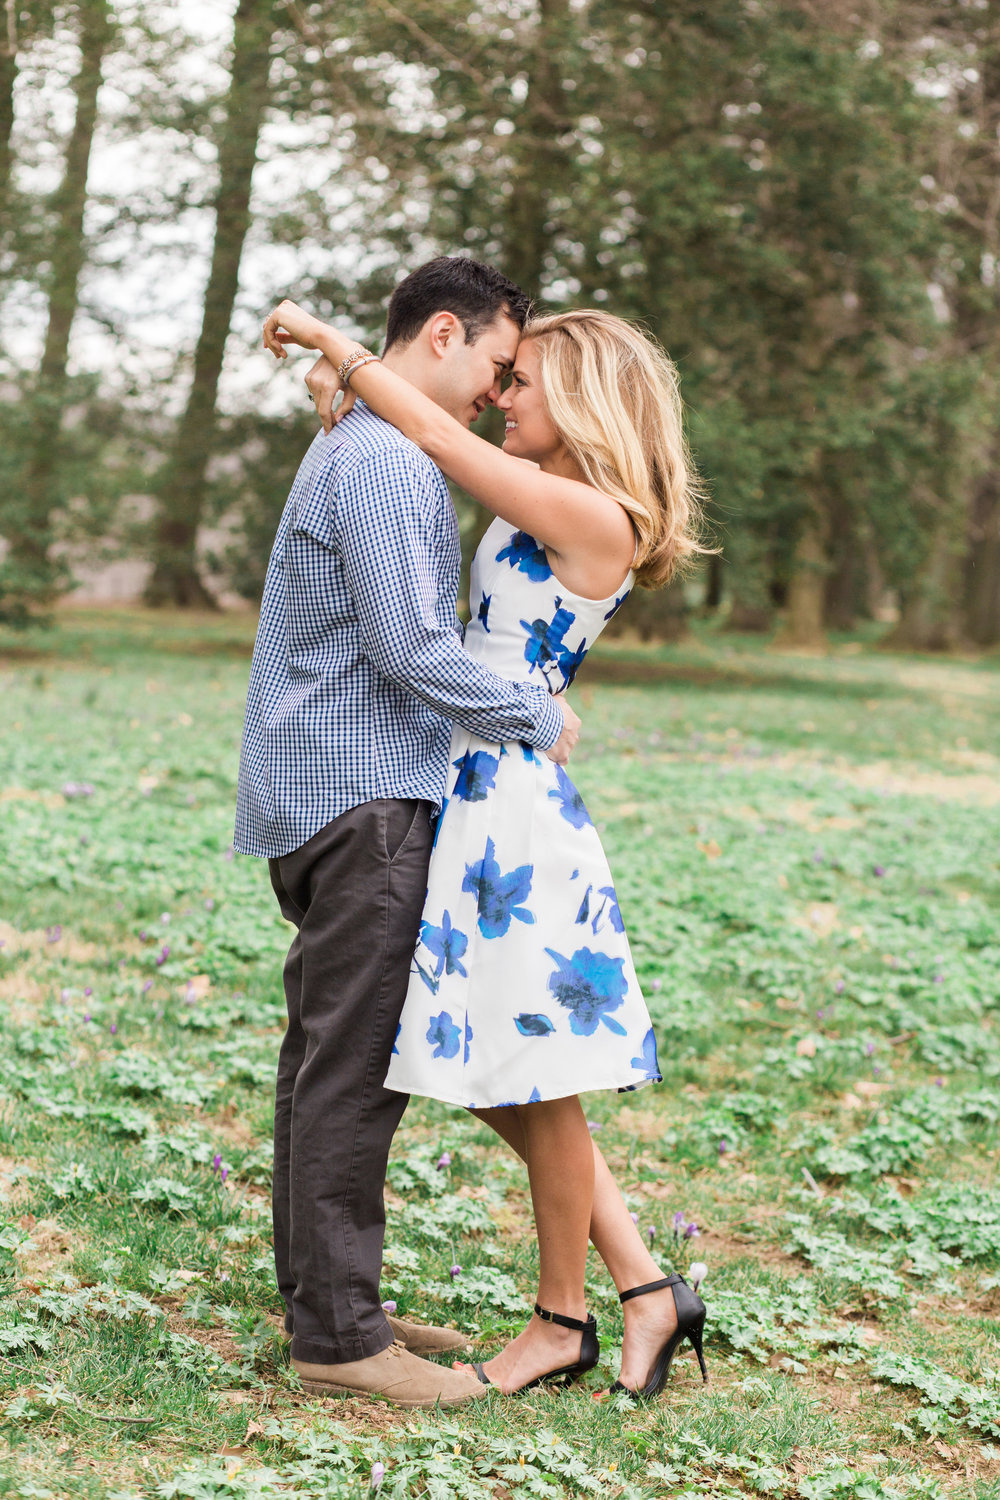 HNP-Chelsea-Jason-Longwood-Gardens-Spring-Engagement-Photos_043.jpg